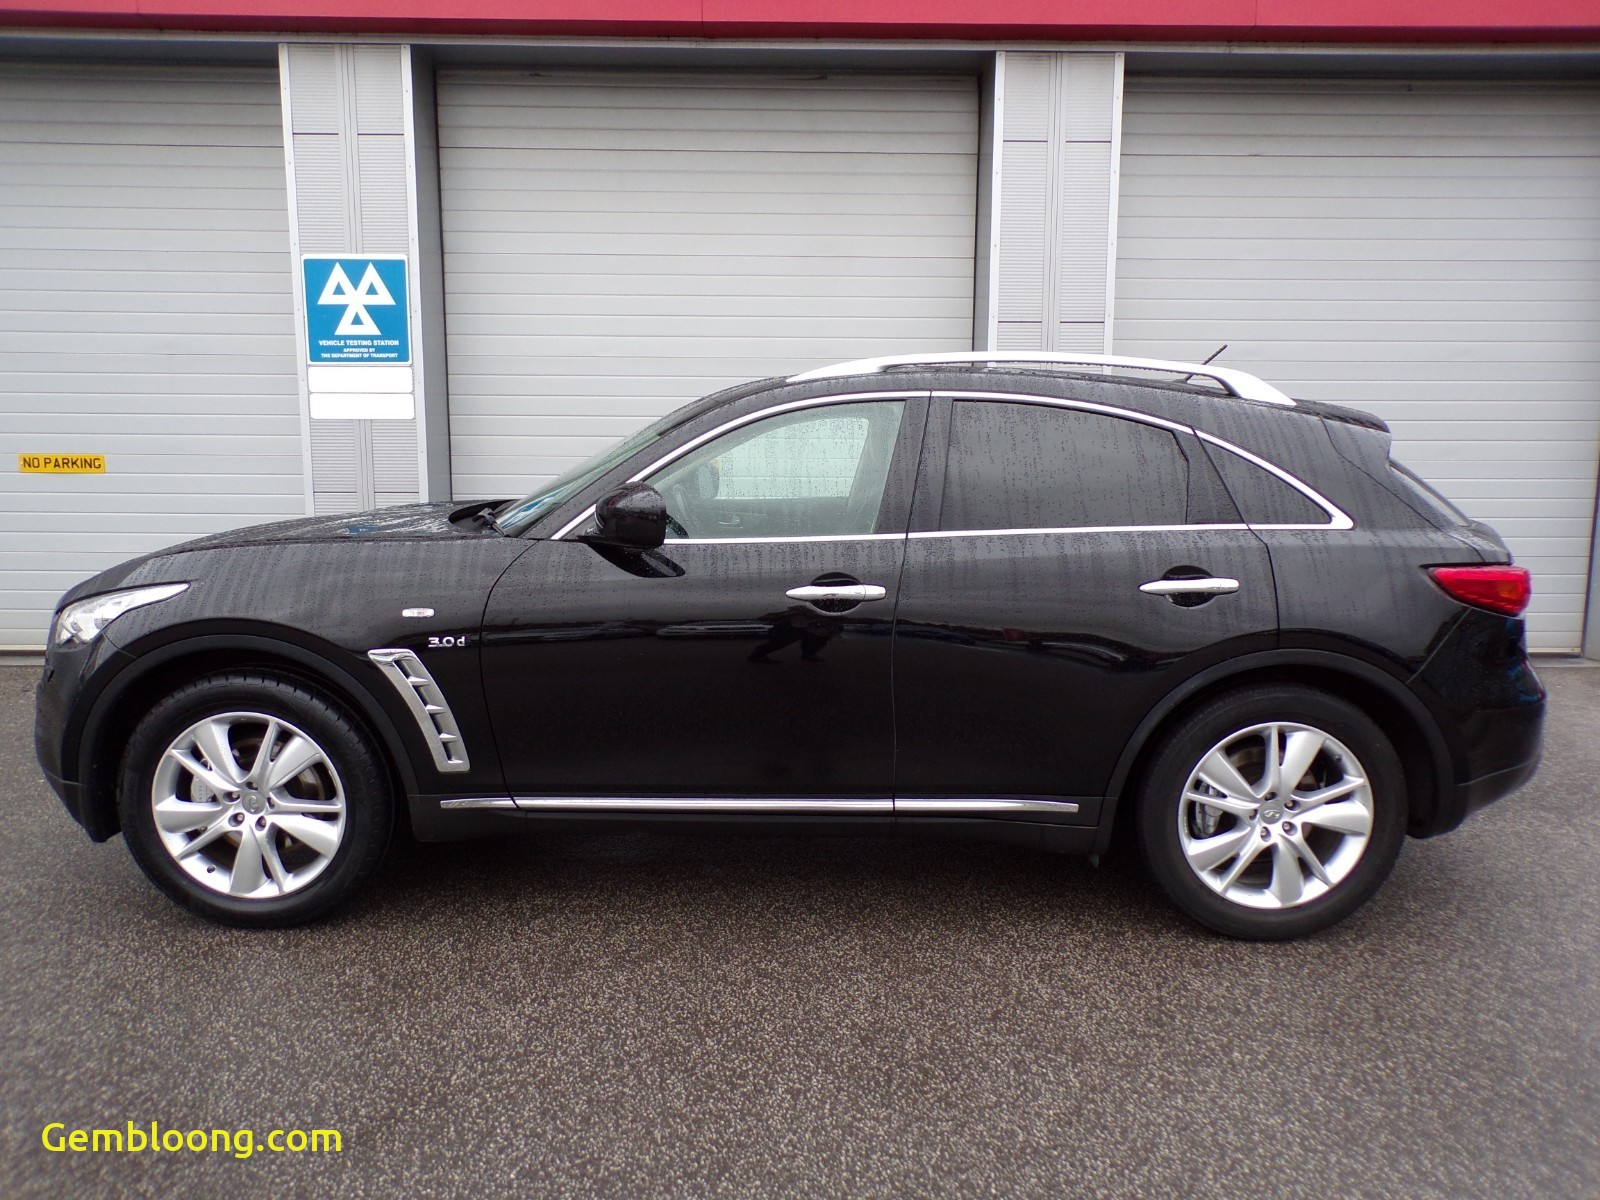 Infiniti G37 Best Of Used Infiniti Qx70 Cars for Sale Drive24